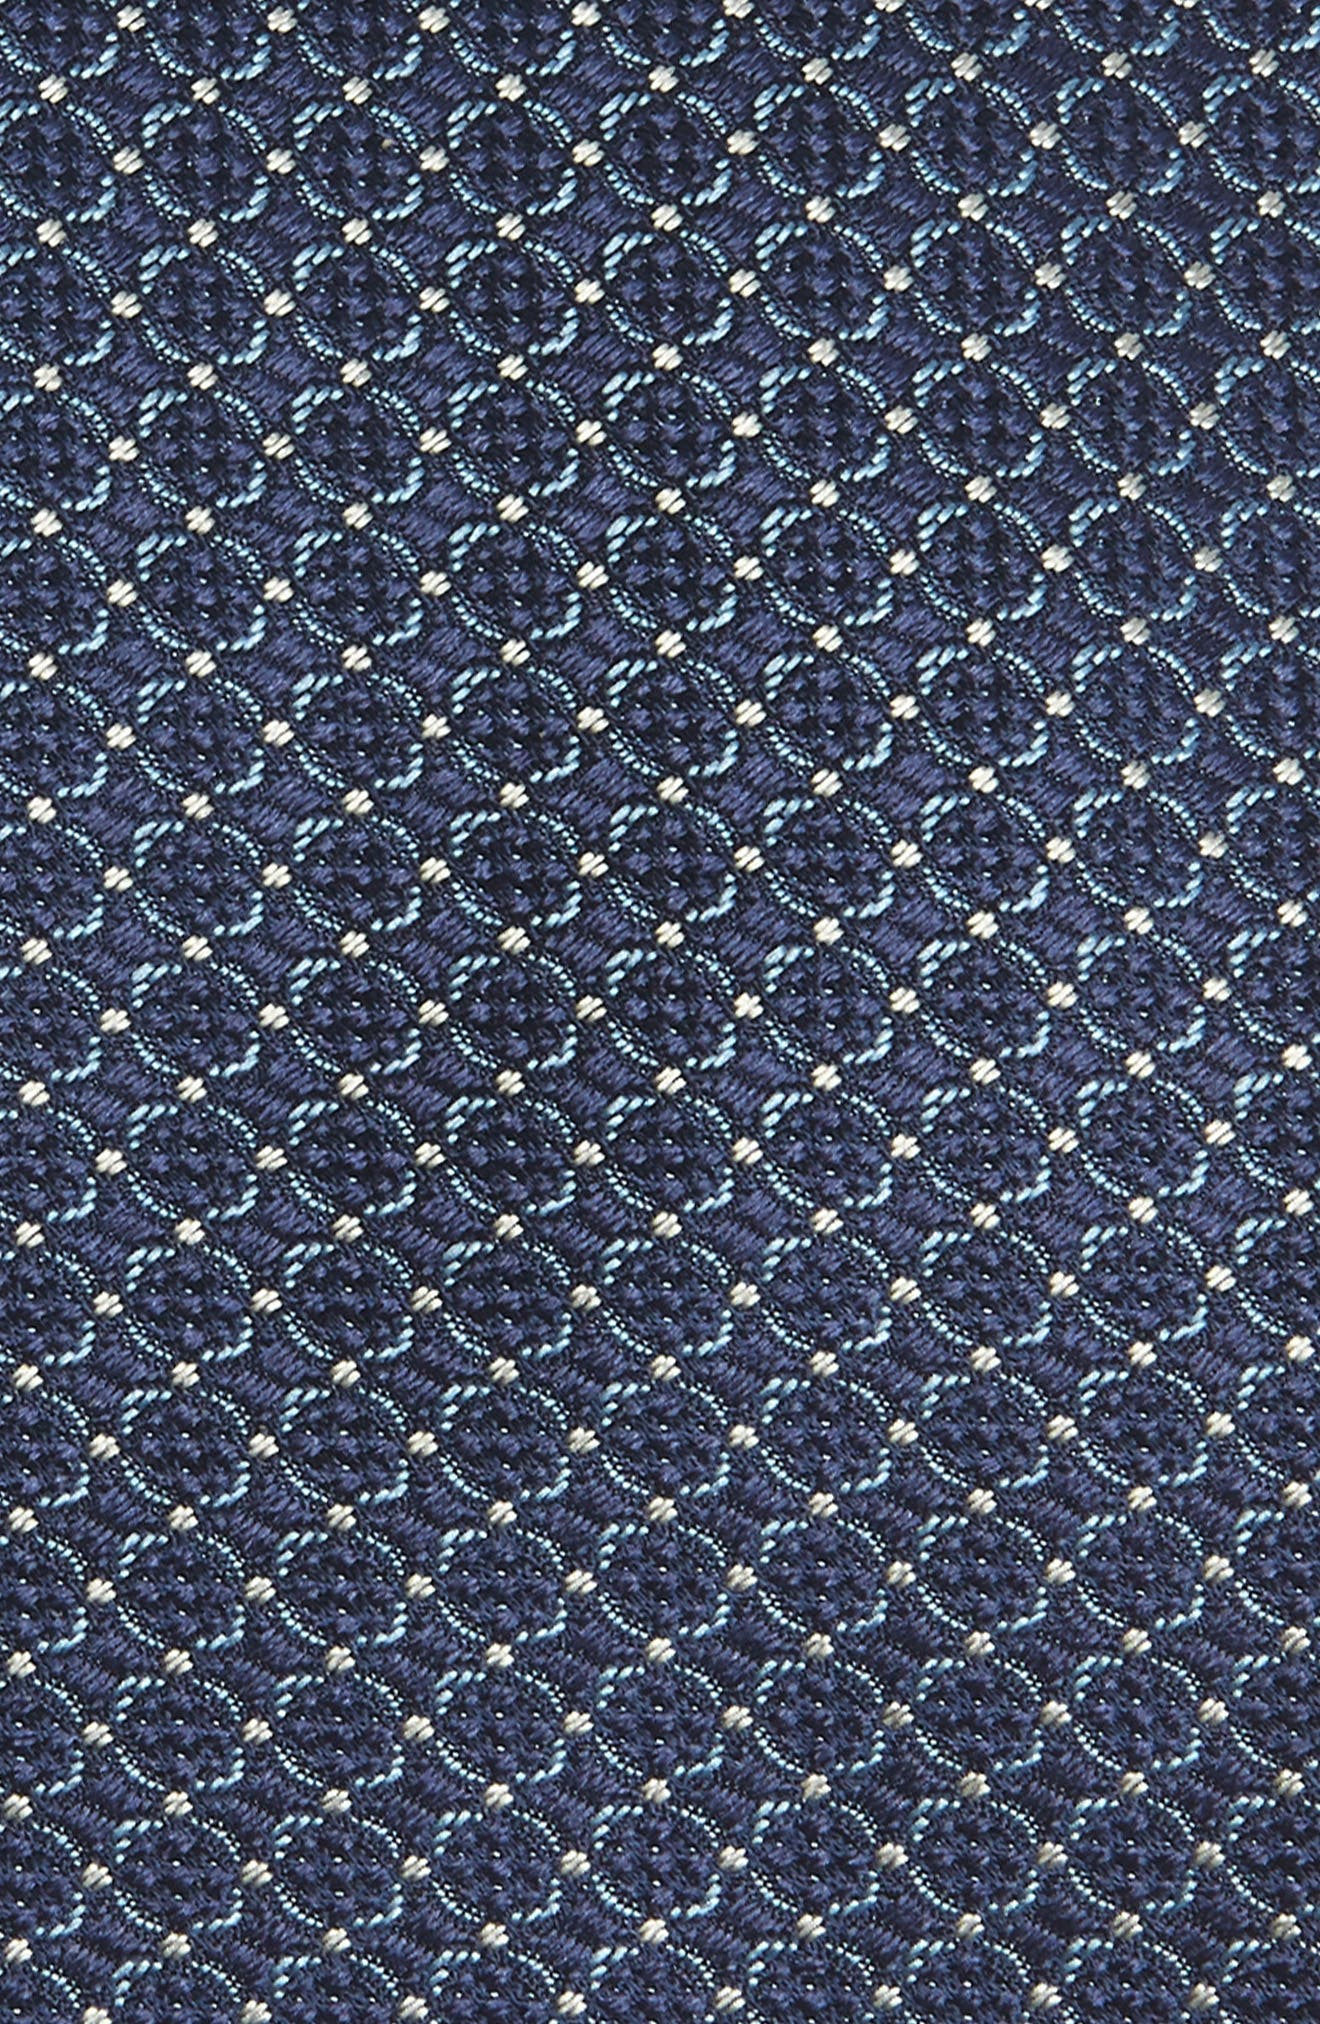 Geometric Silk Tie,                             Alternate thumbnail 2, color,                             430